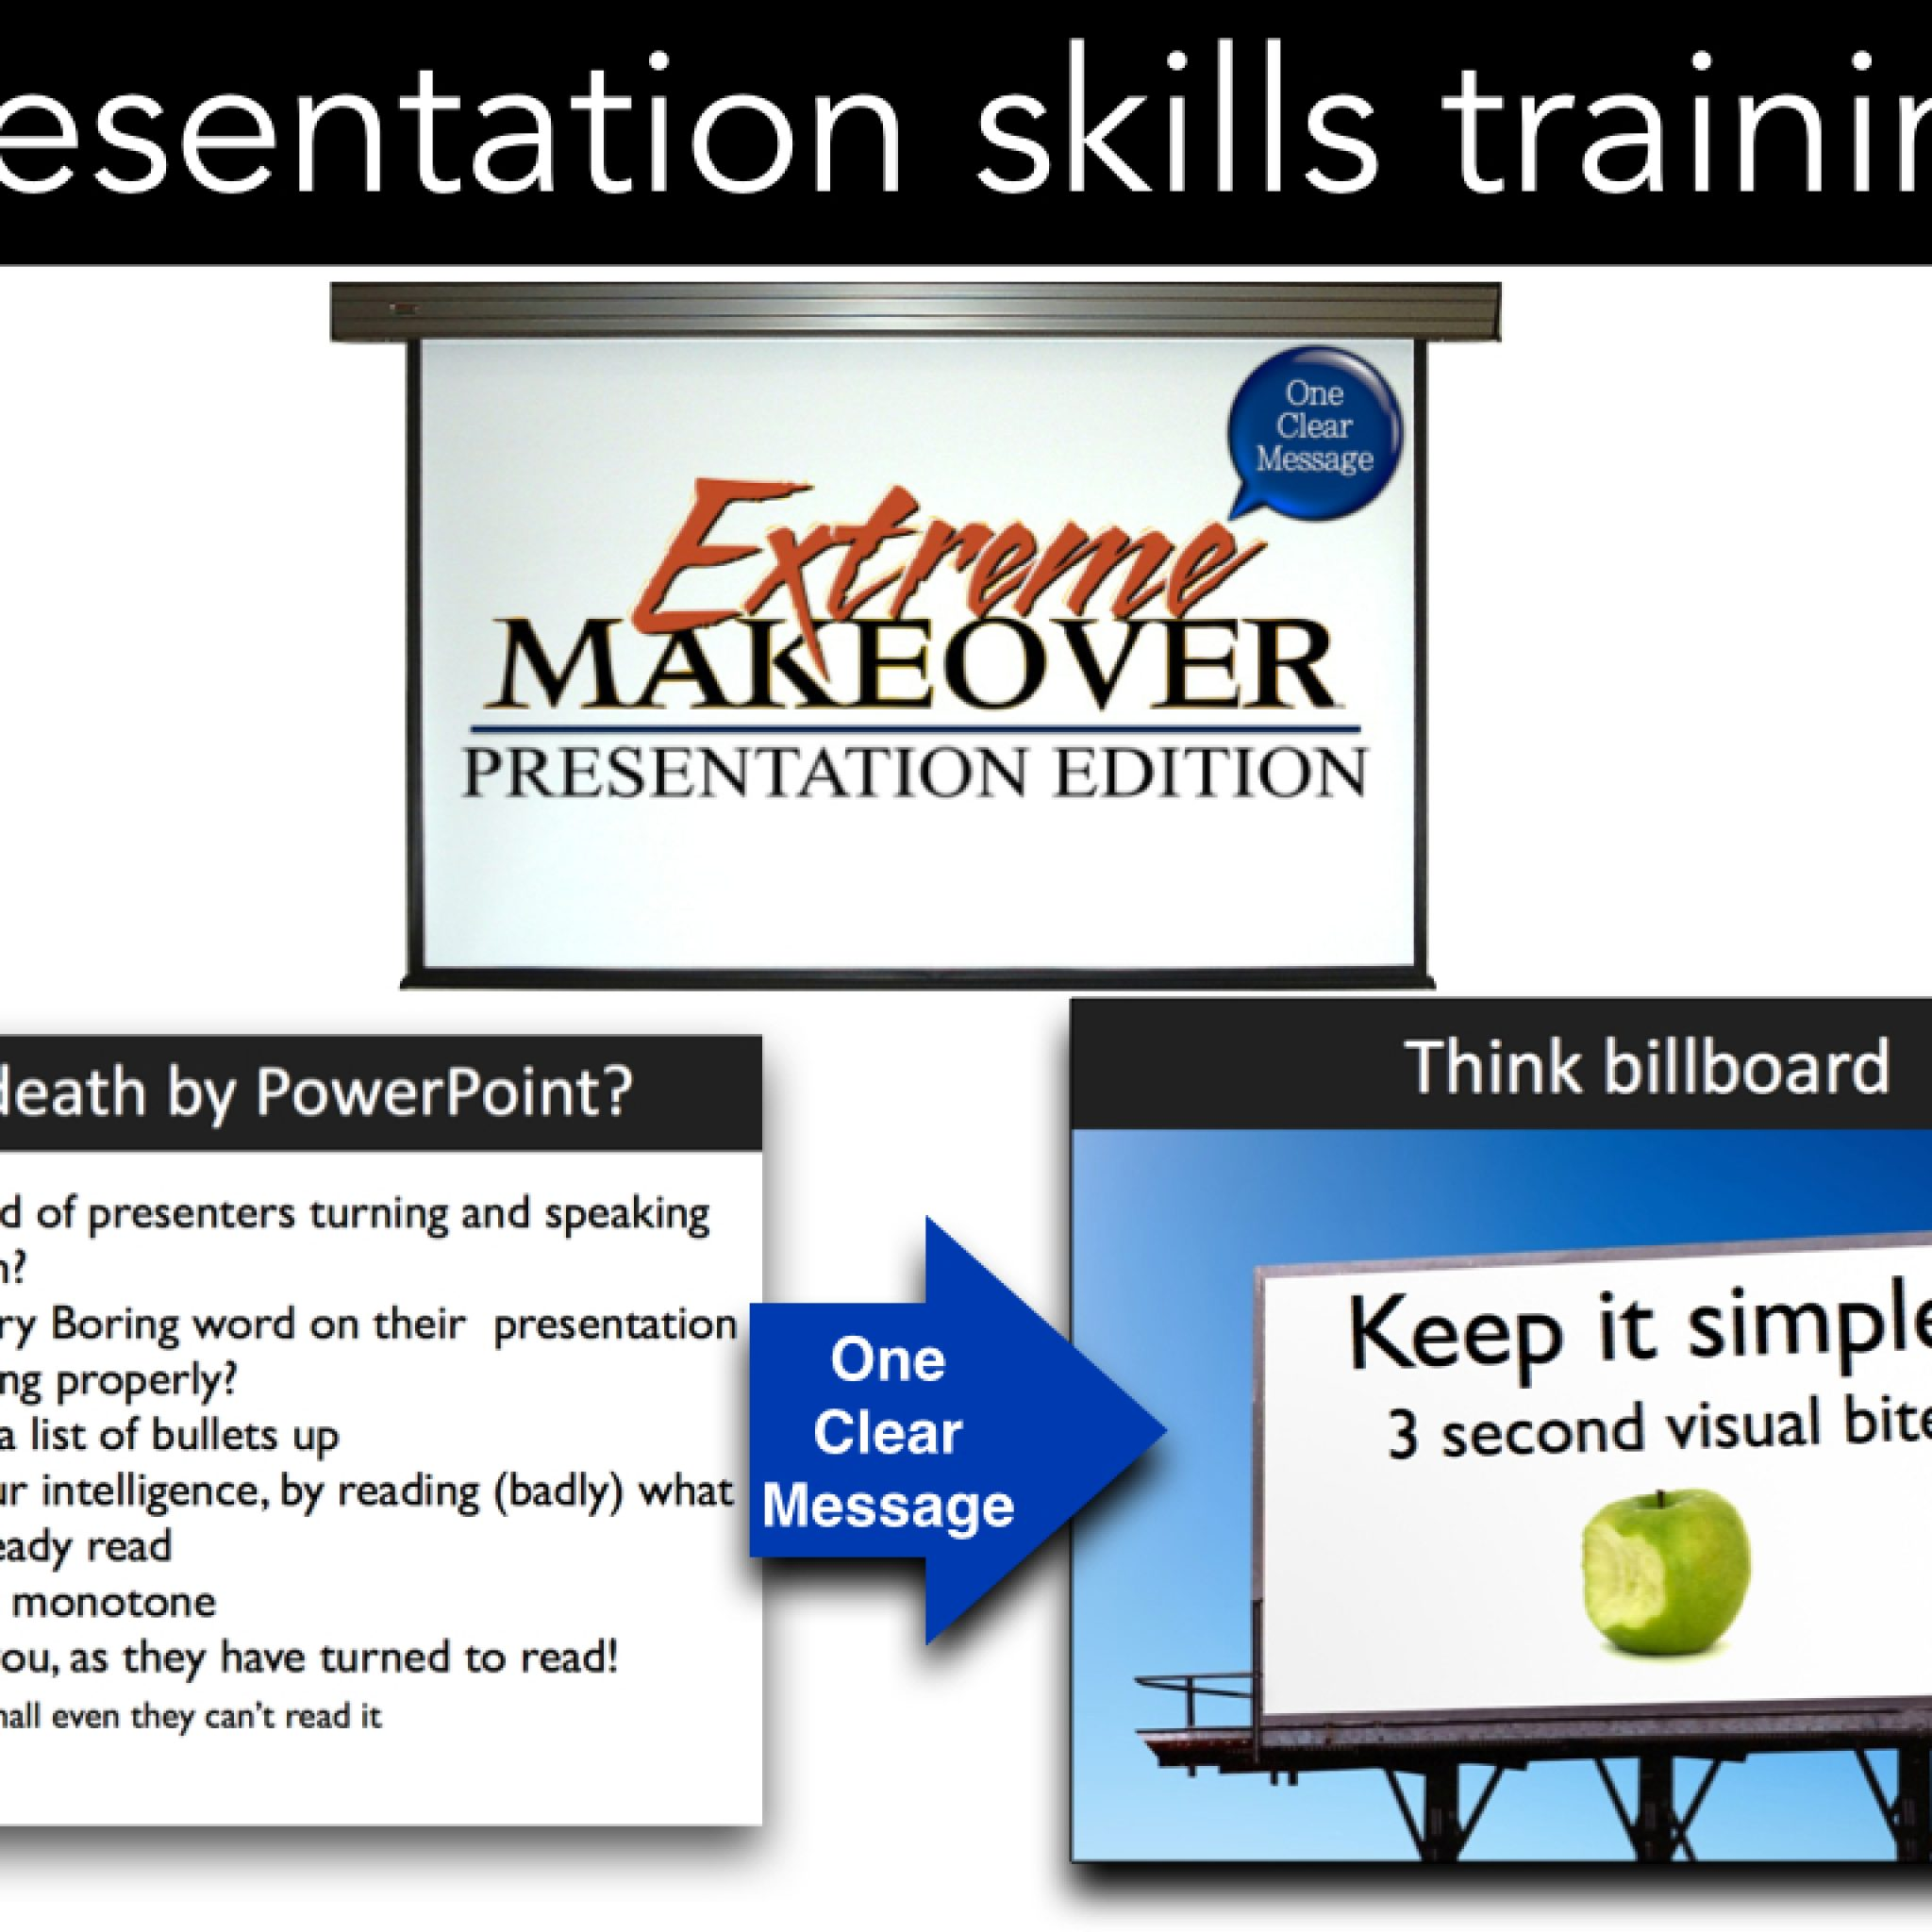 Presentation skills training speaker training